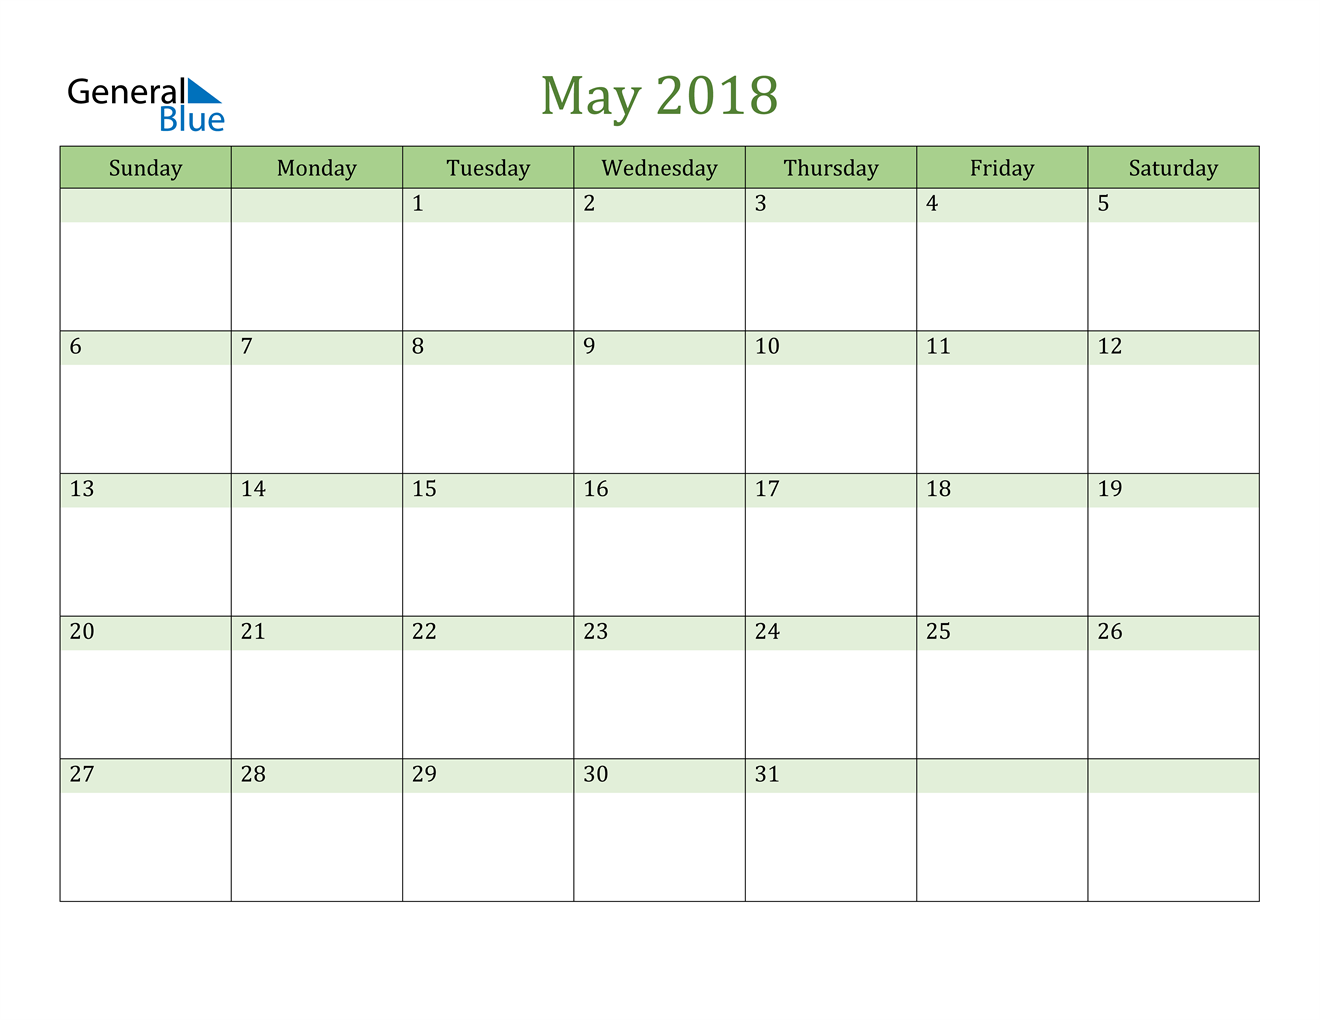 Image of May 2018 Cool and Relaxing Green Calendar Calendar